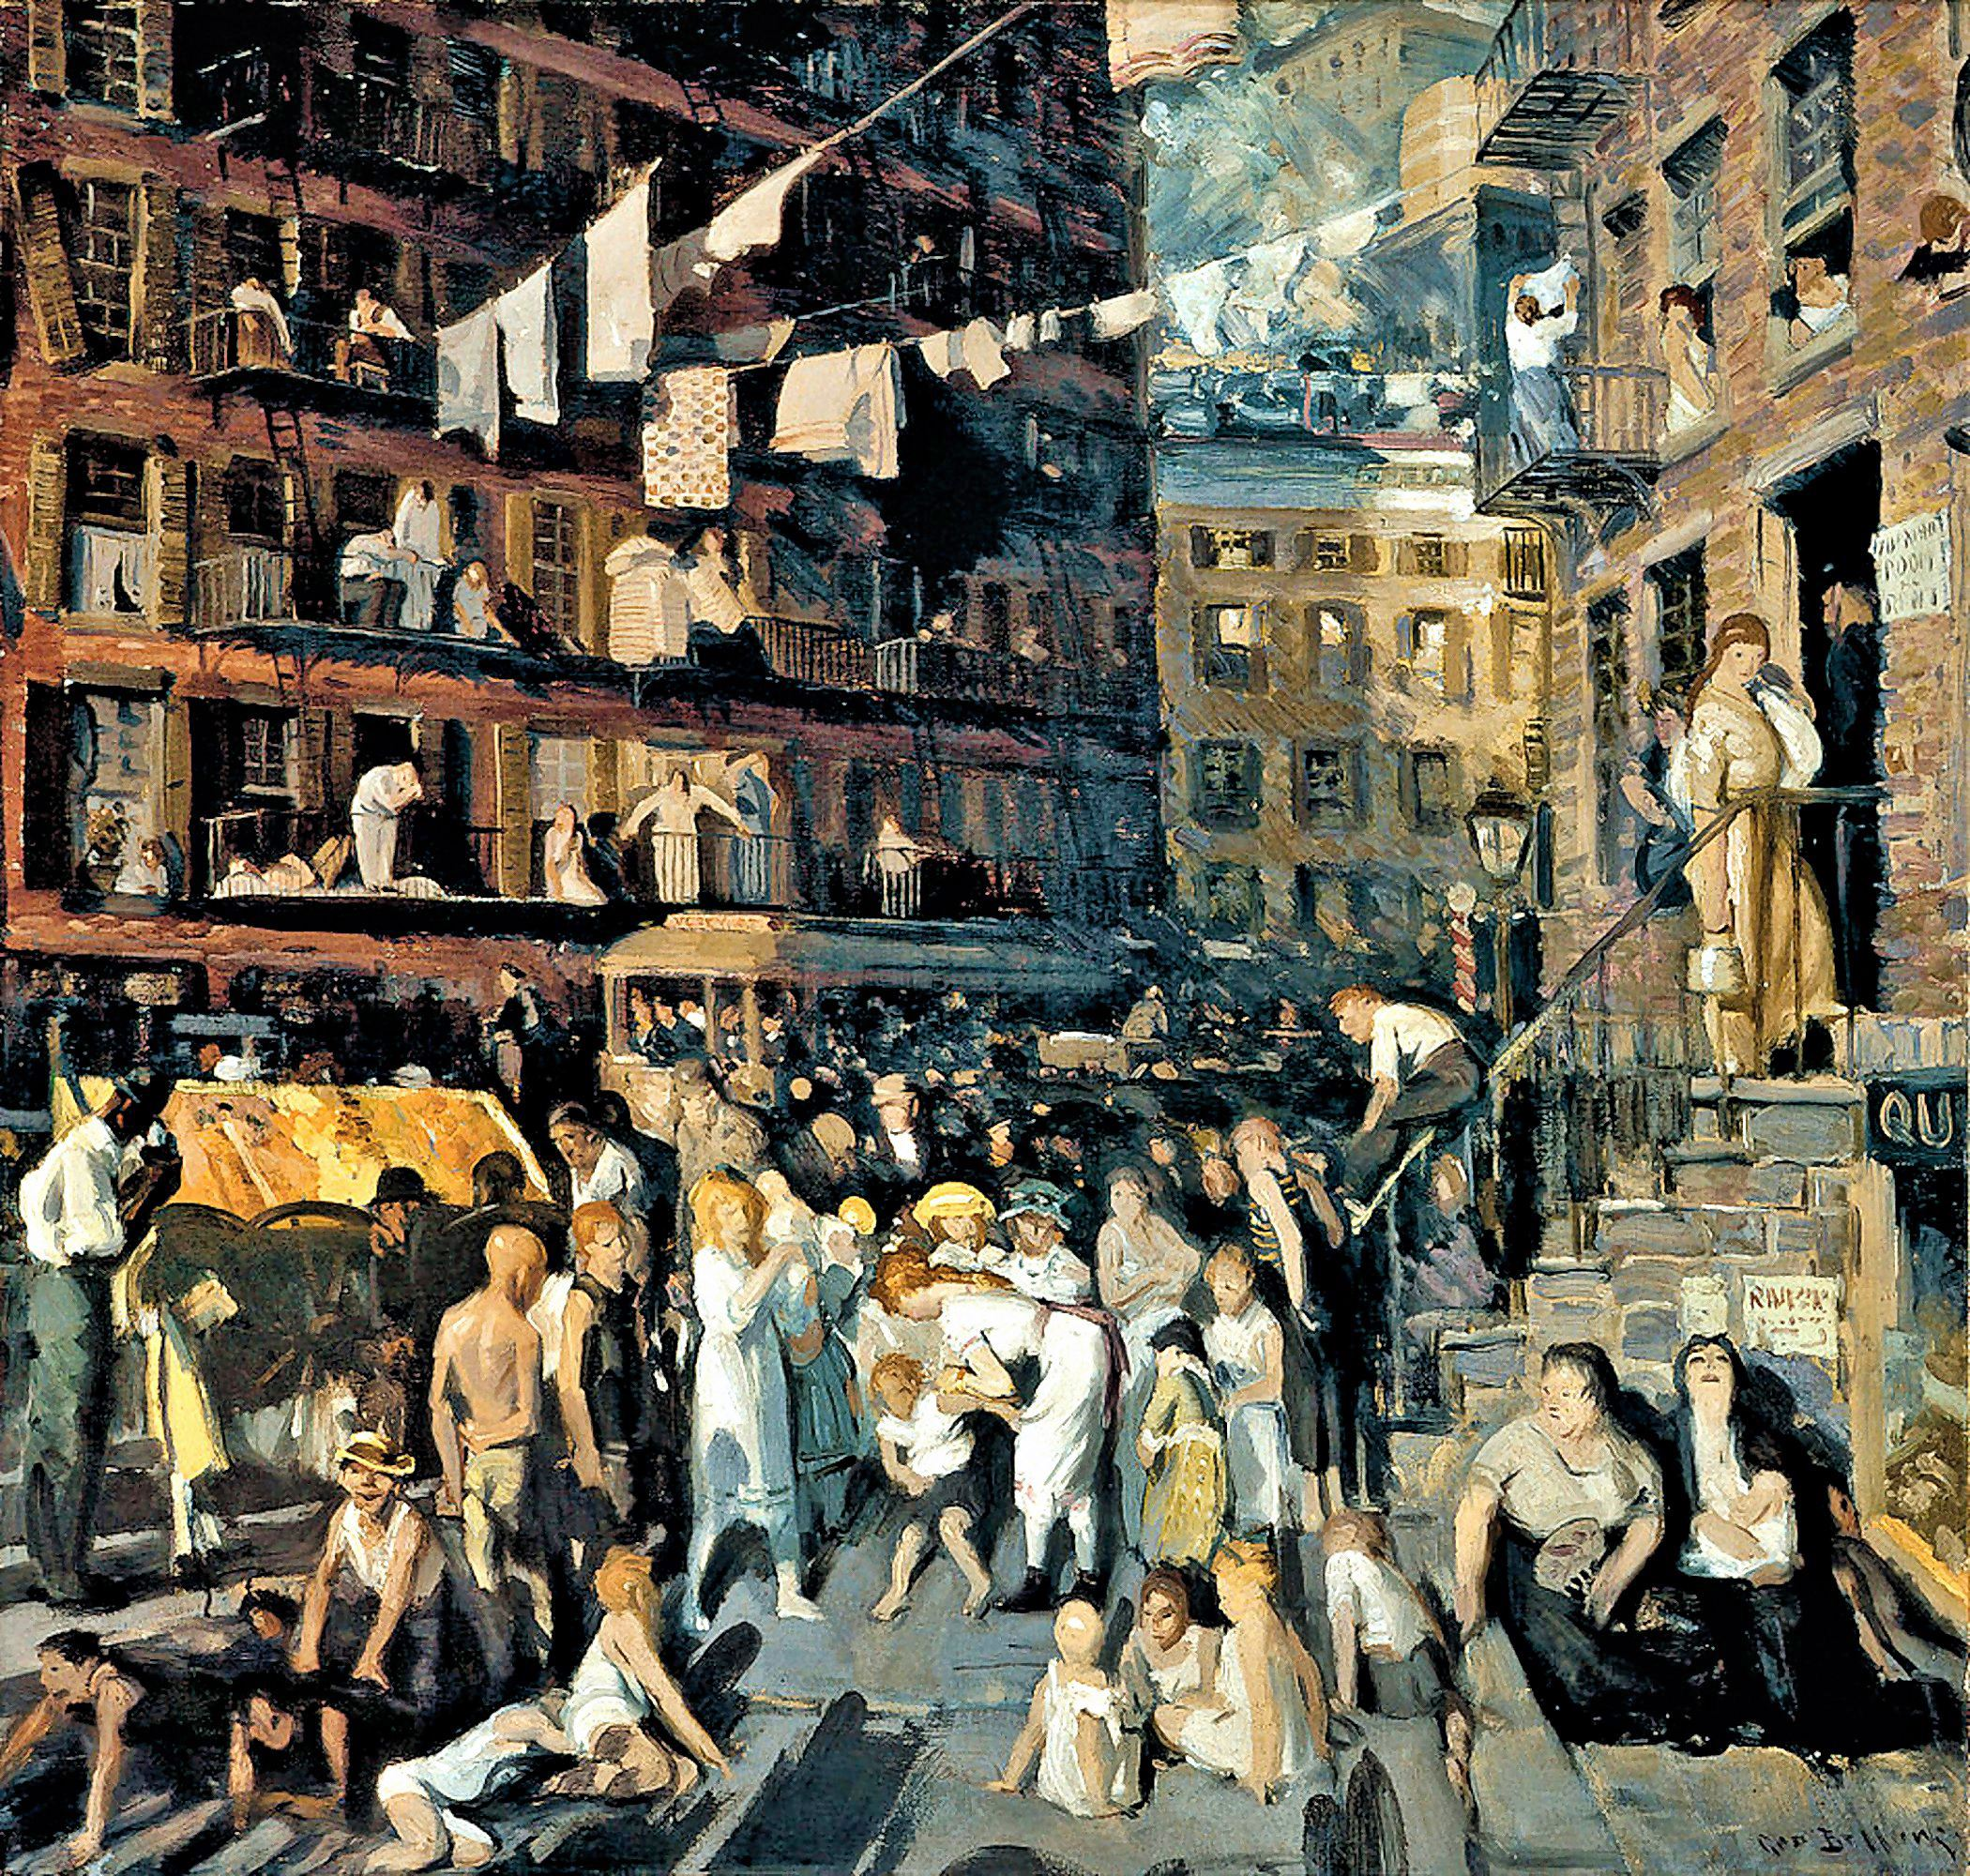 00 George Bellows. Cliff Dwellers. 1913